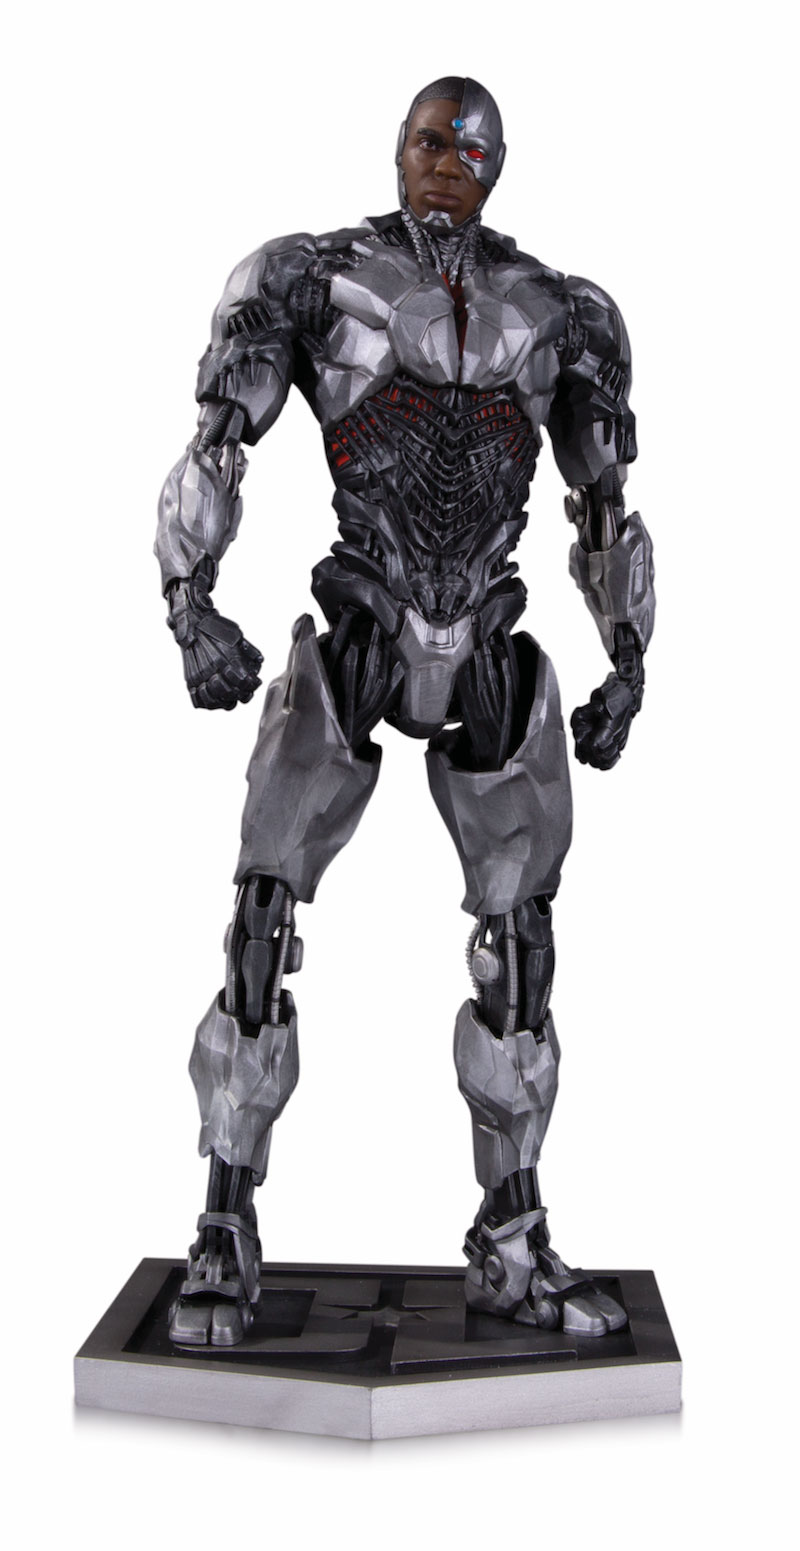 JUSTICE LEAGUE MOVIE STATUES: CYBORG